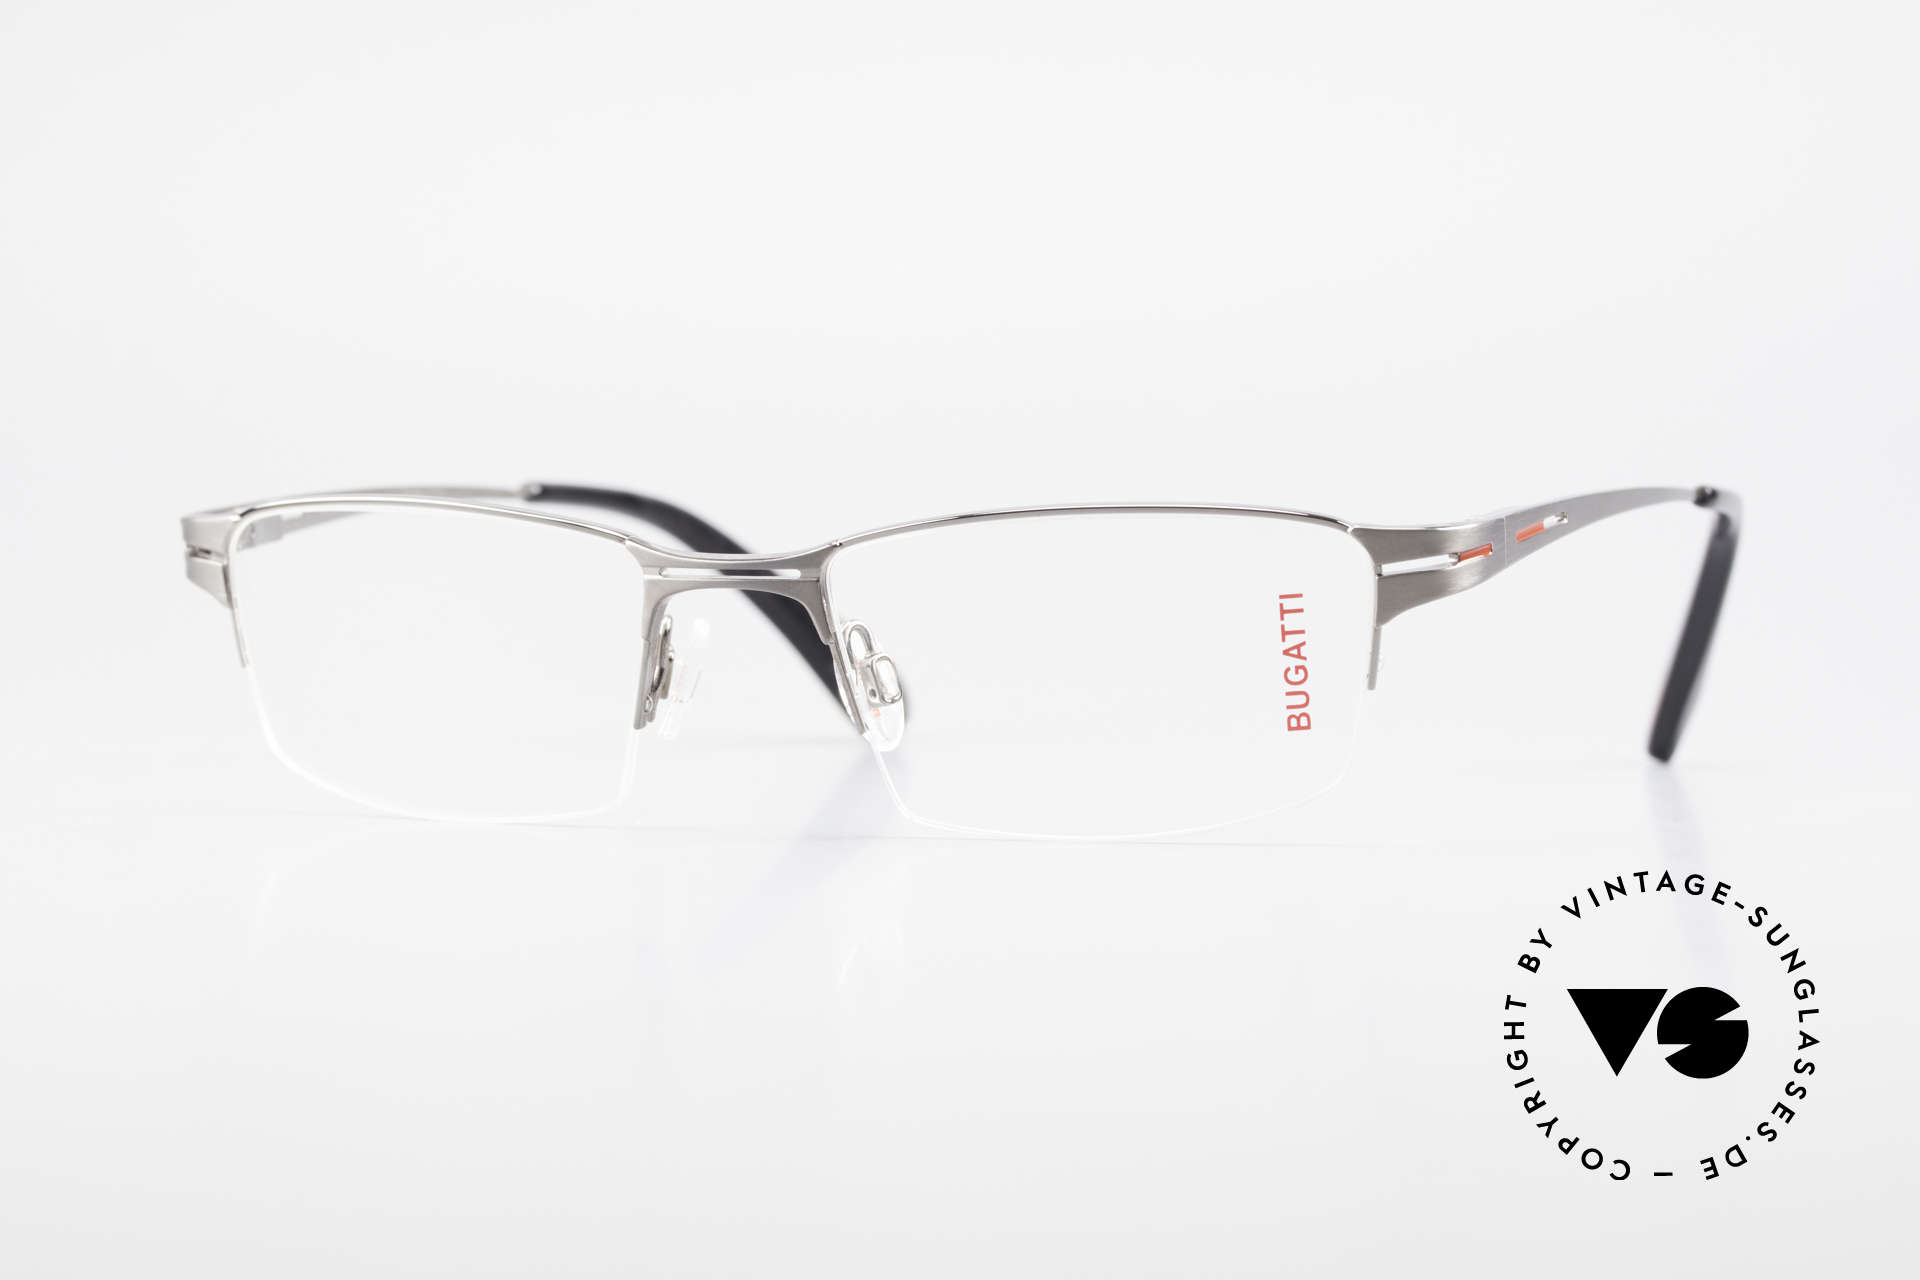 Bugatti 456 Nylor Titan Frame Ruthenium, original, vintage NYLOR eyeglass-frame by Bugatti, Made for Men